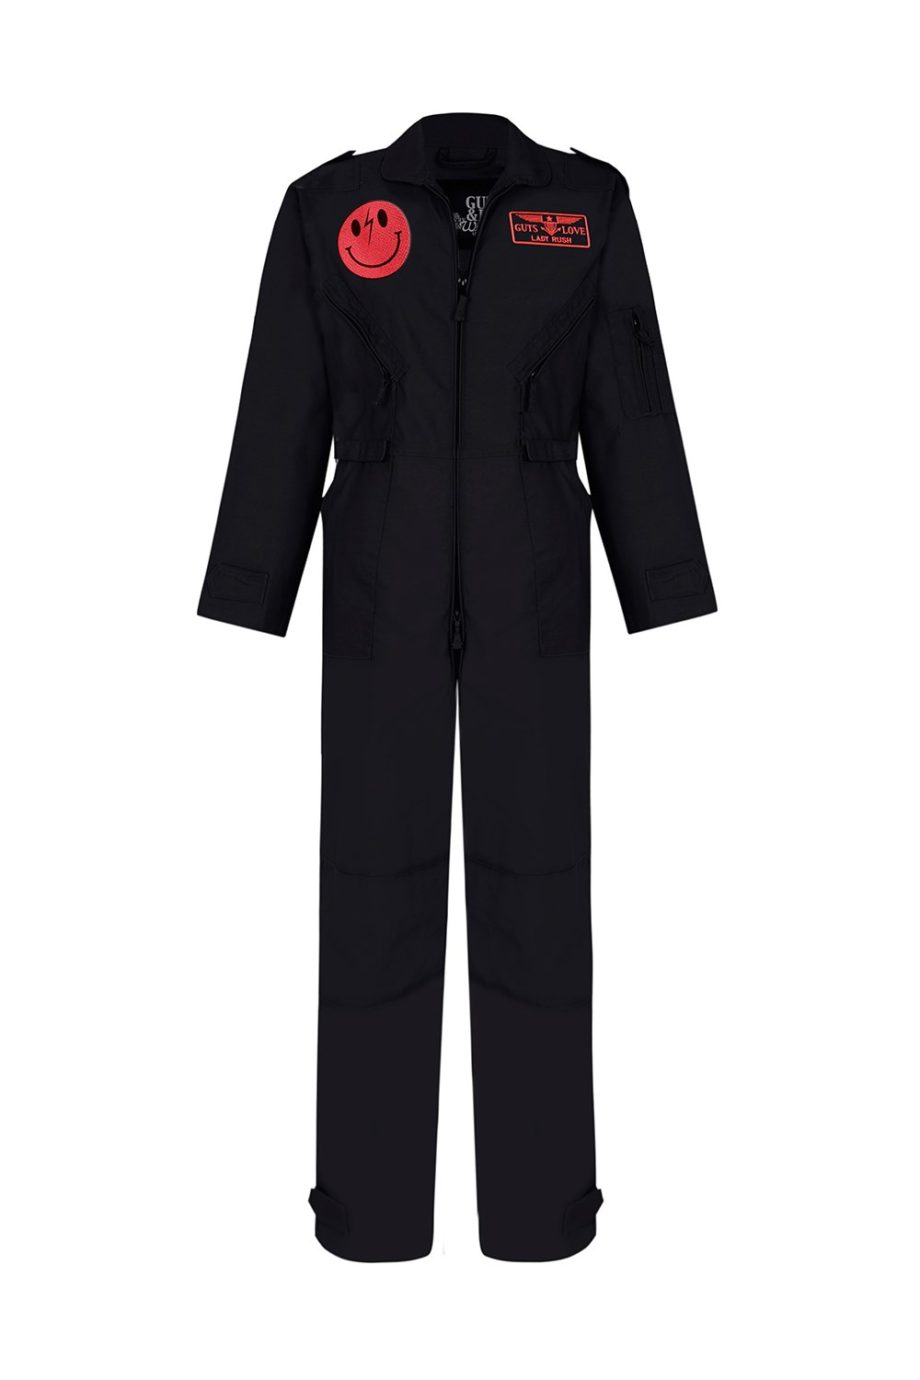 BLACK AND NEON COVERALL